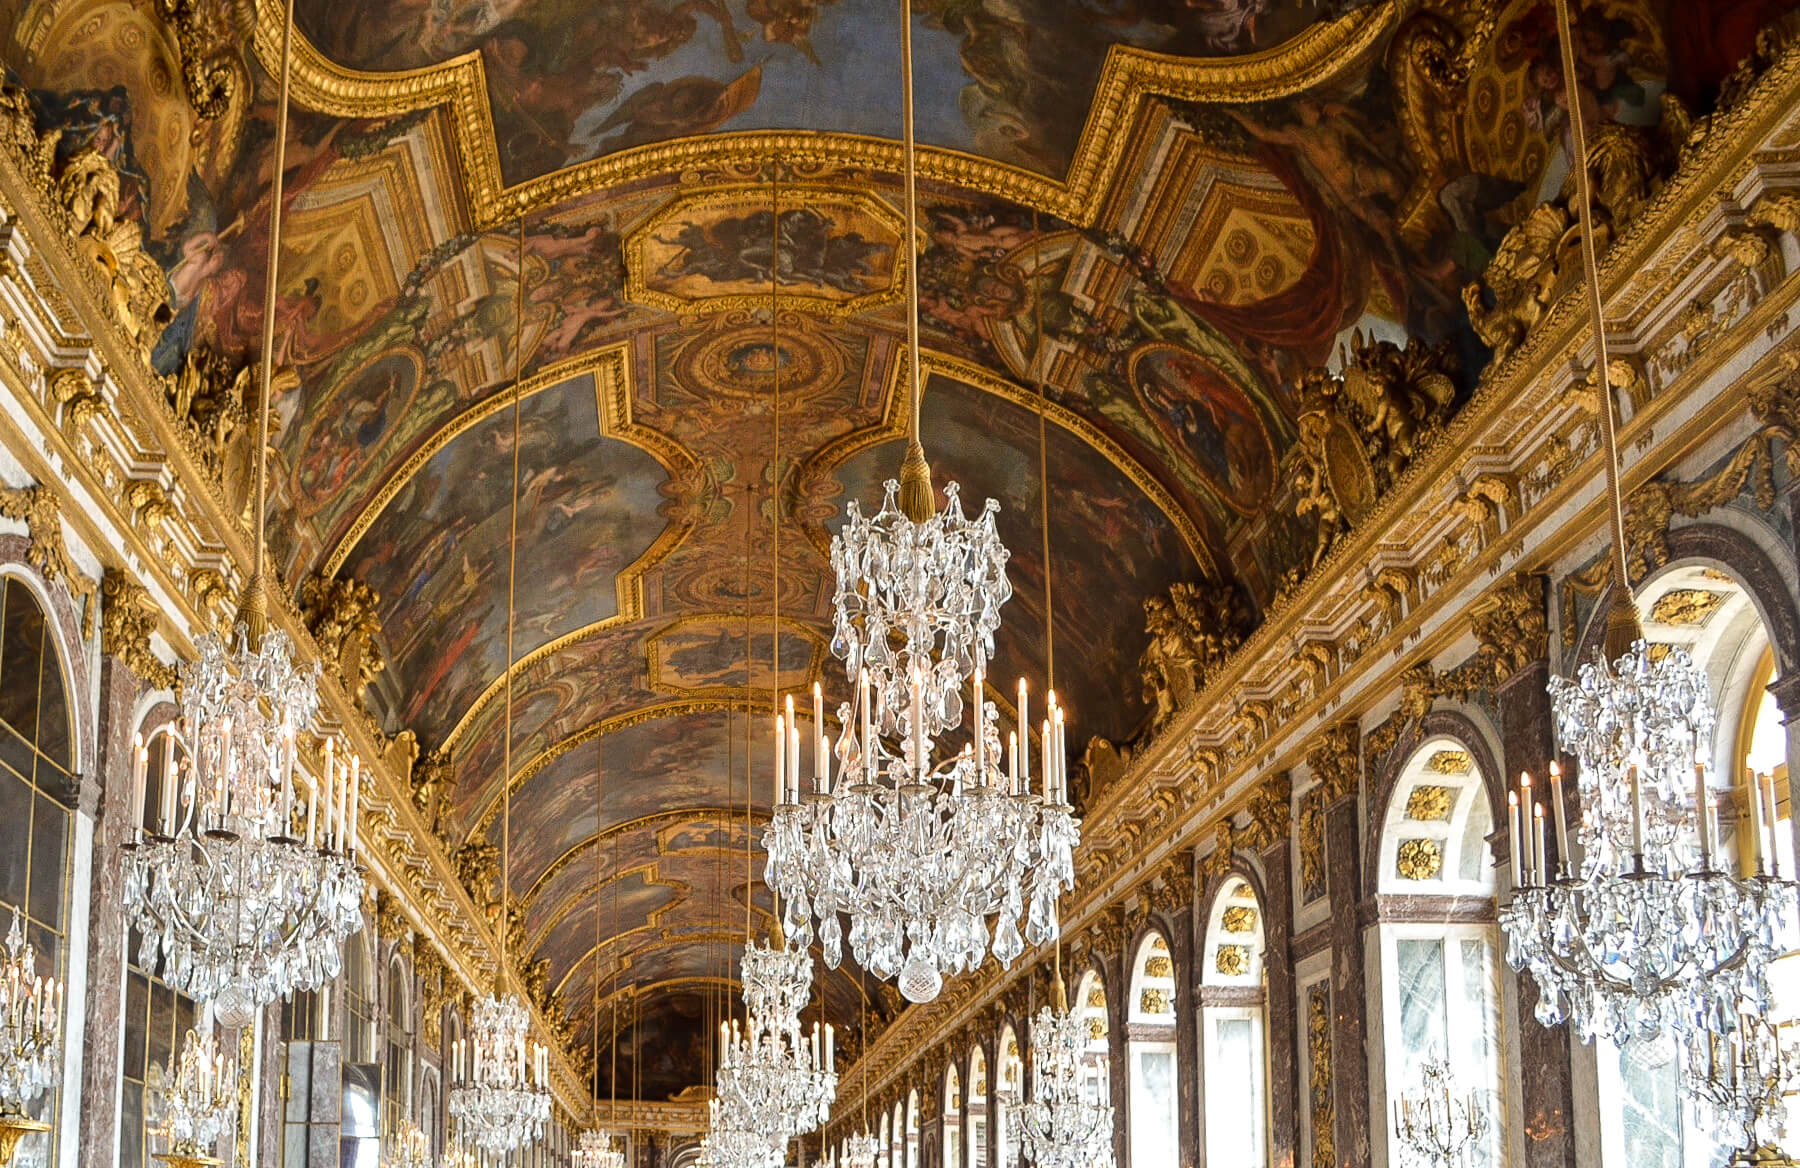 Roof of a hallway plated in gold with ancient painting and chandeliers